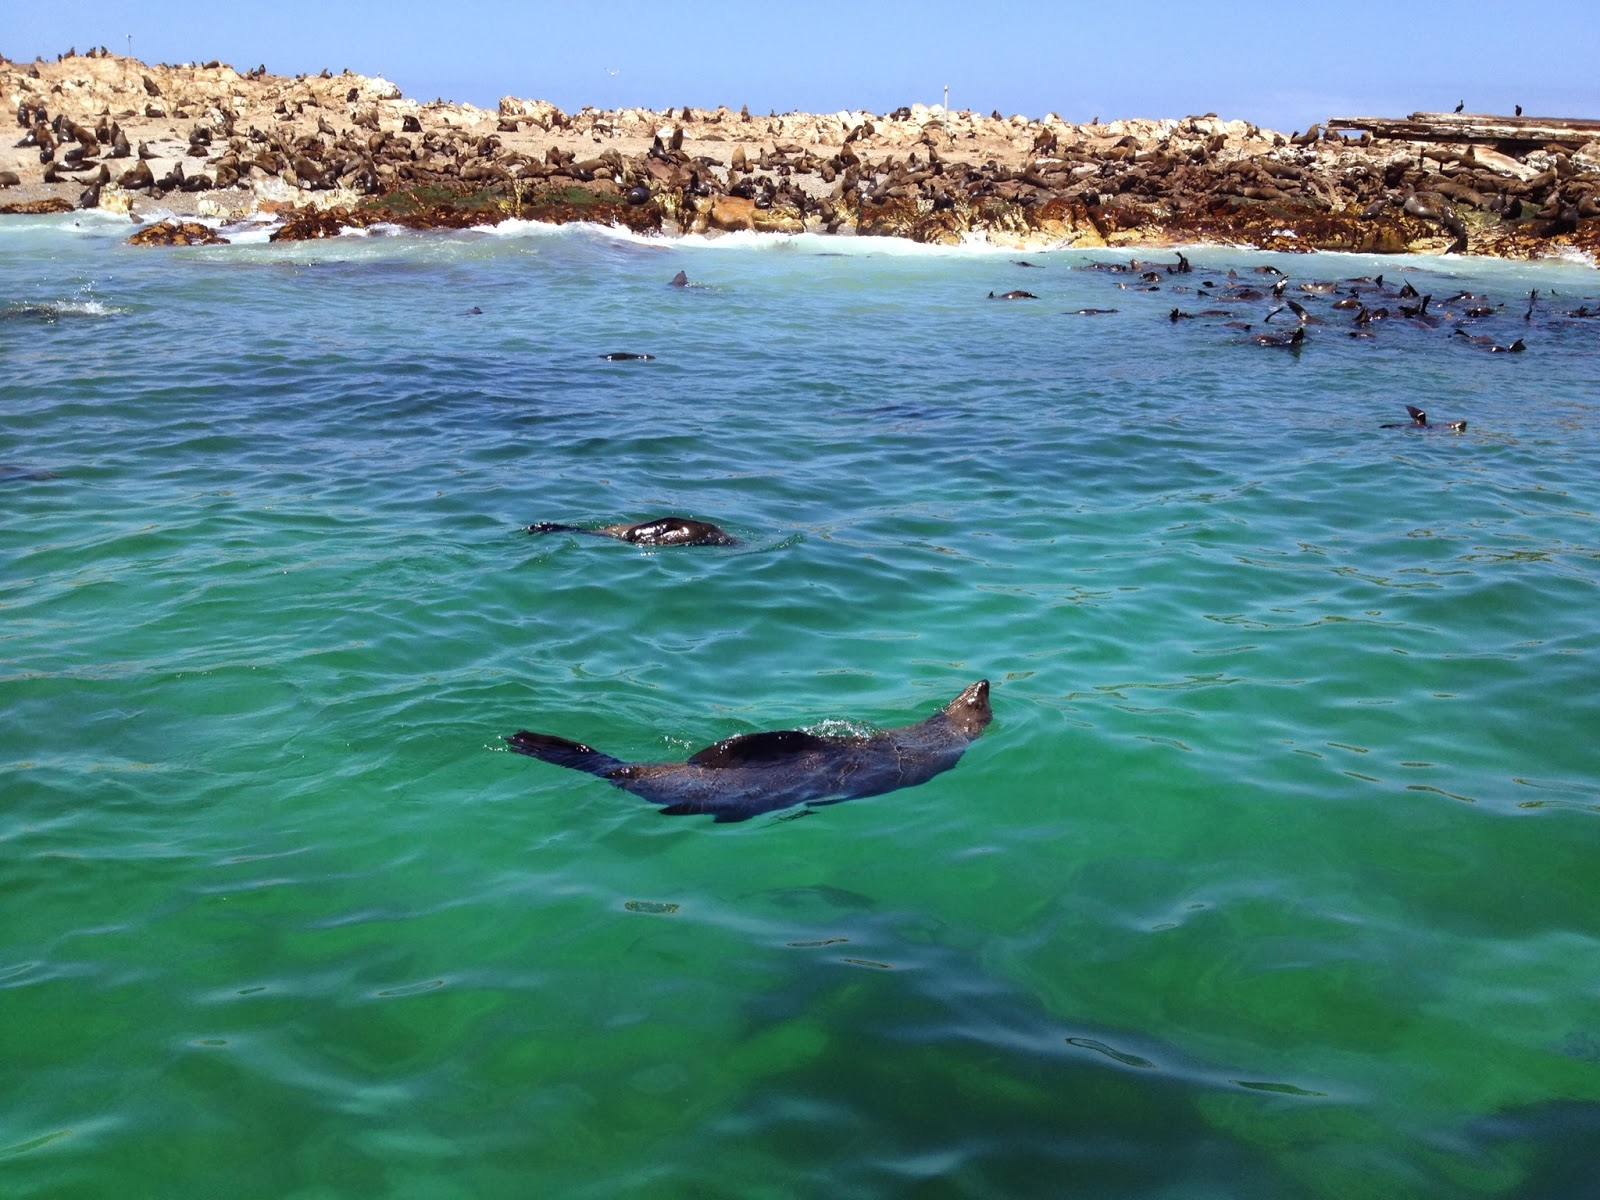 Kleinbaai - We saw fur seals on our way back to shore